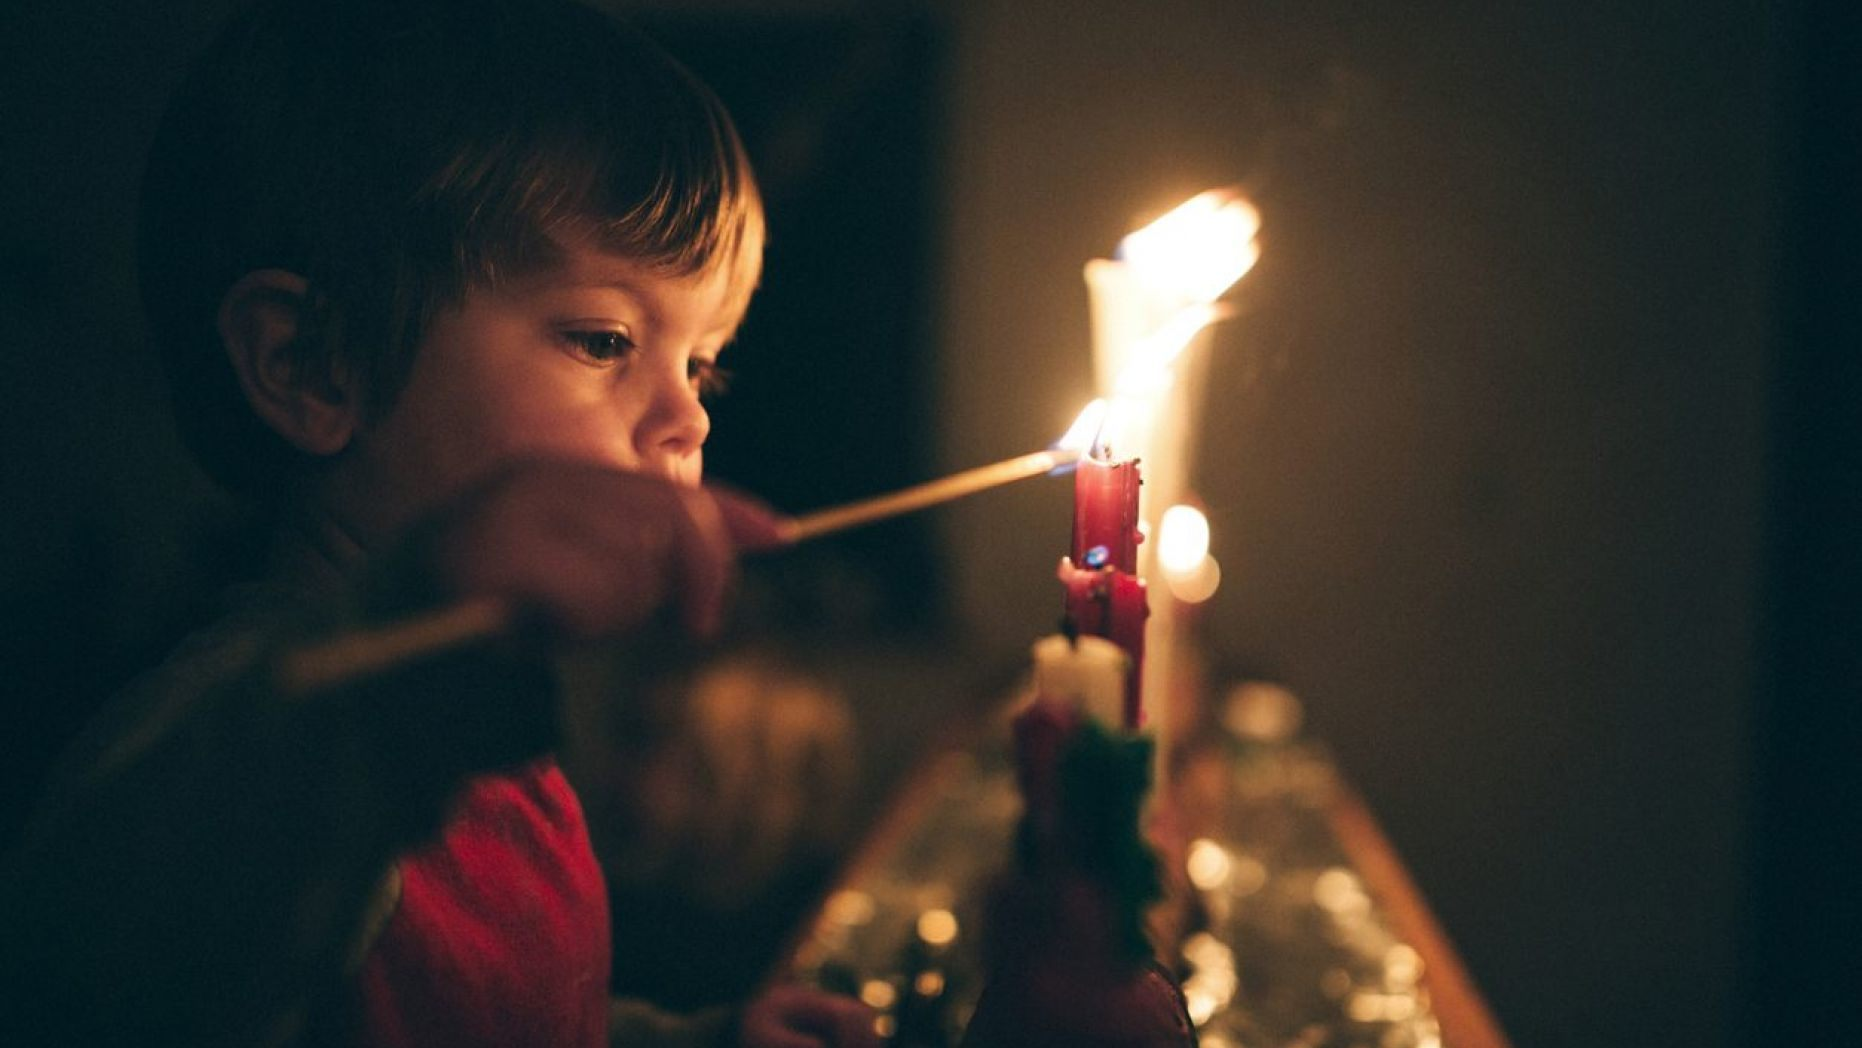 Little boy lighting Christmas candles